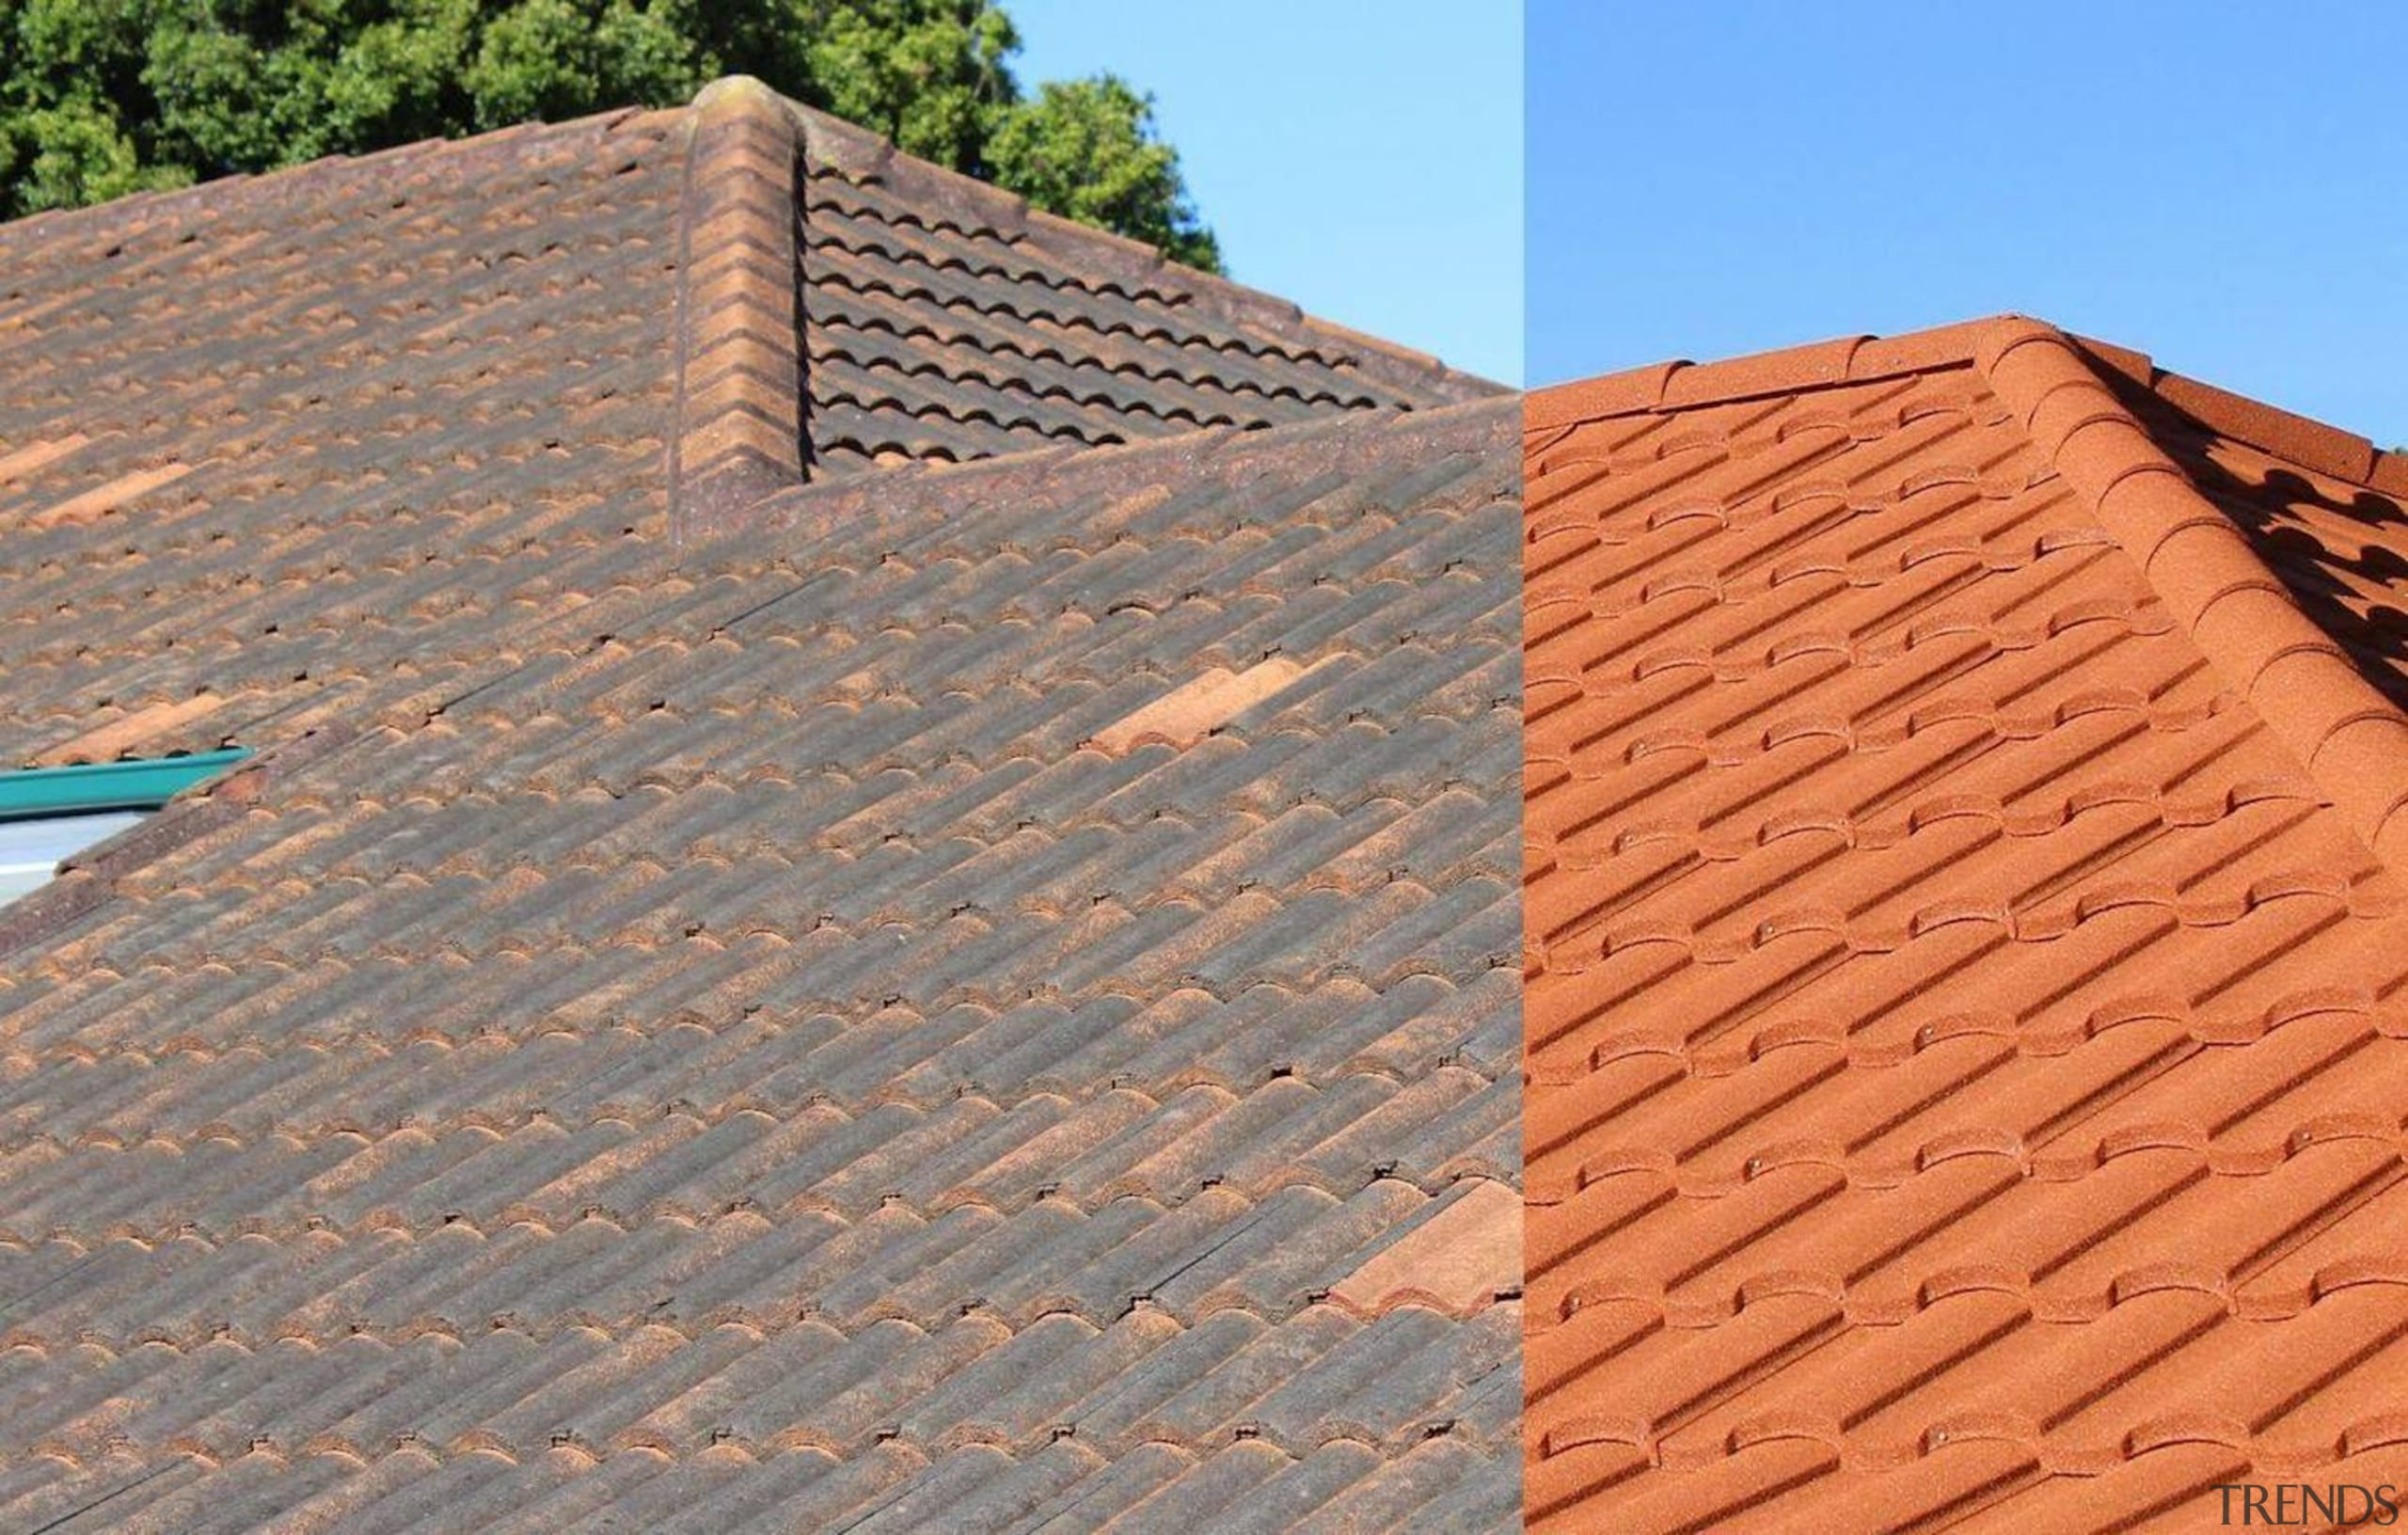 Before and after - brick   brickwork   brick, brickwork, facade, outdoor structure, roof, roofer, sky, wall, wood, wood stain, orange, gray